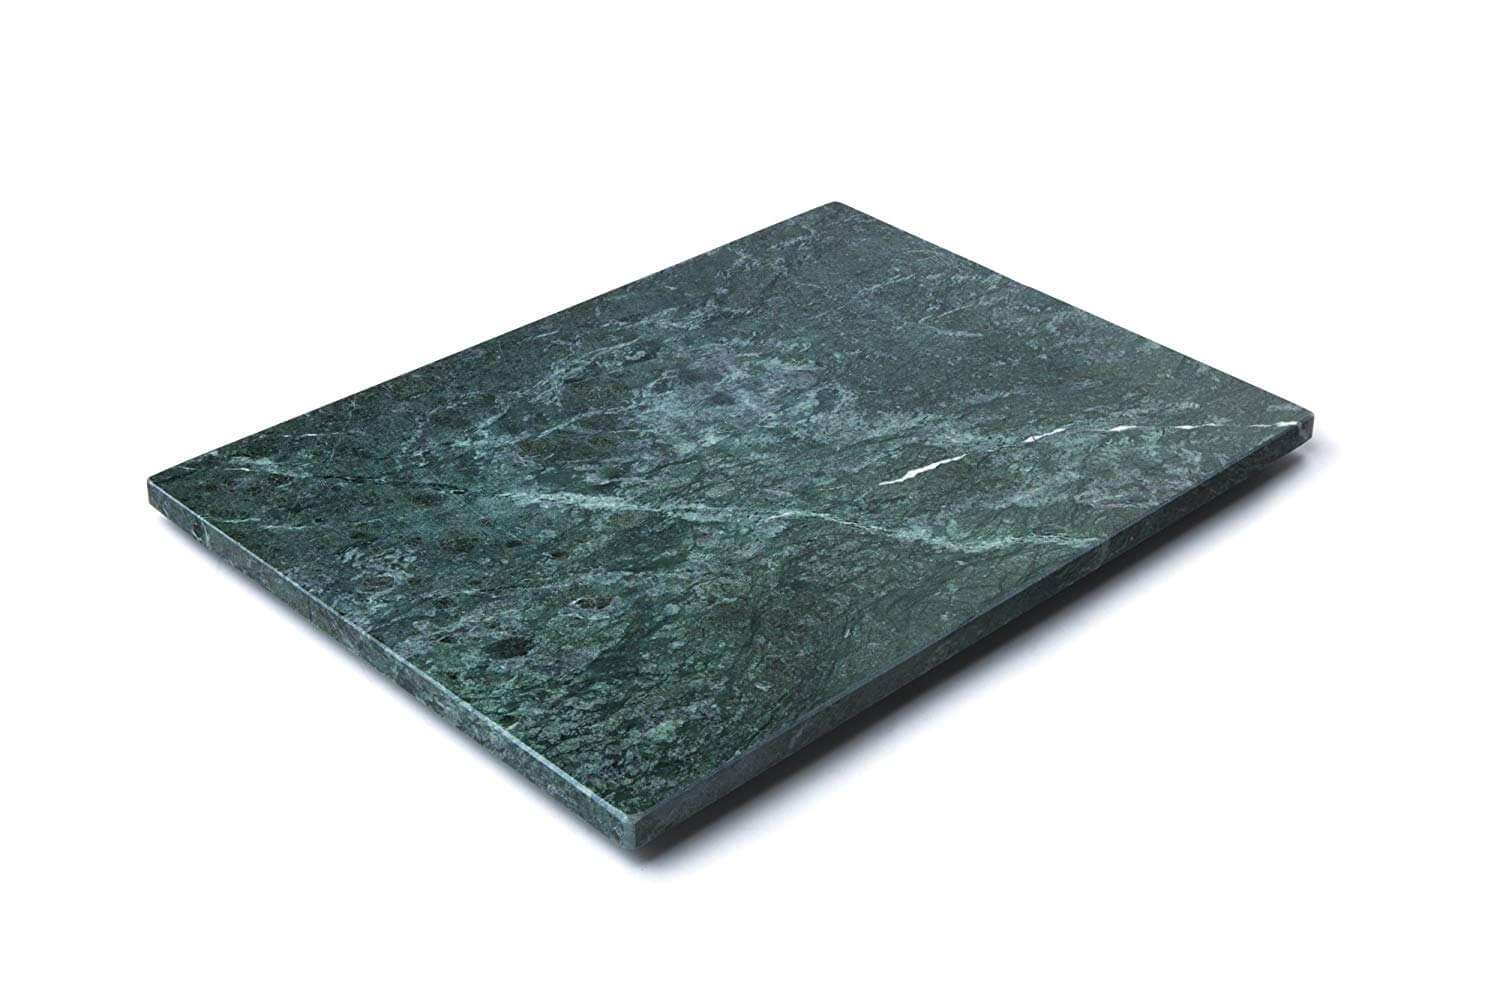 Small Marble Cutting Board The 8 Best Pastry Boards In 2019 Food Shark Marfa